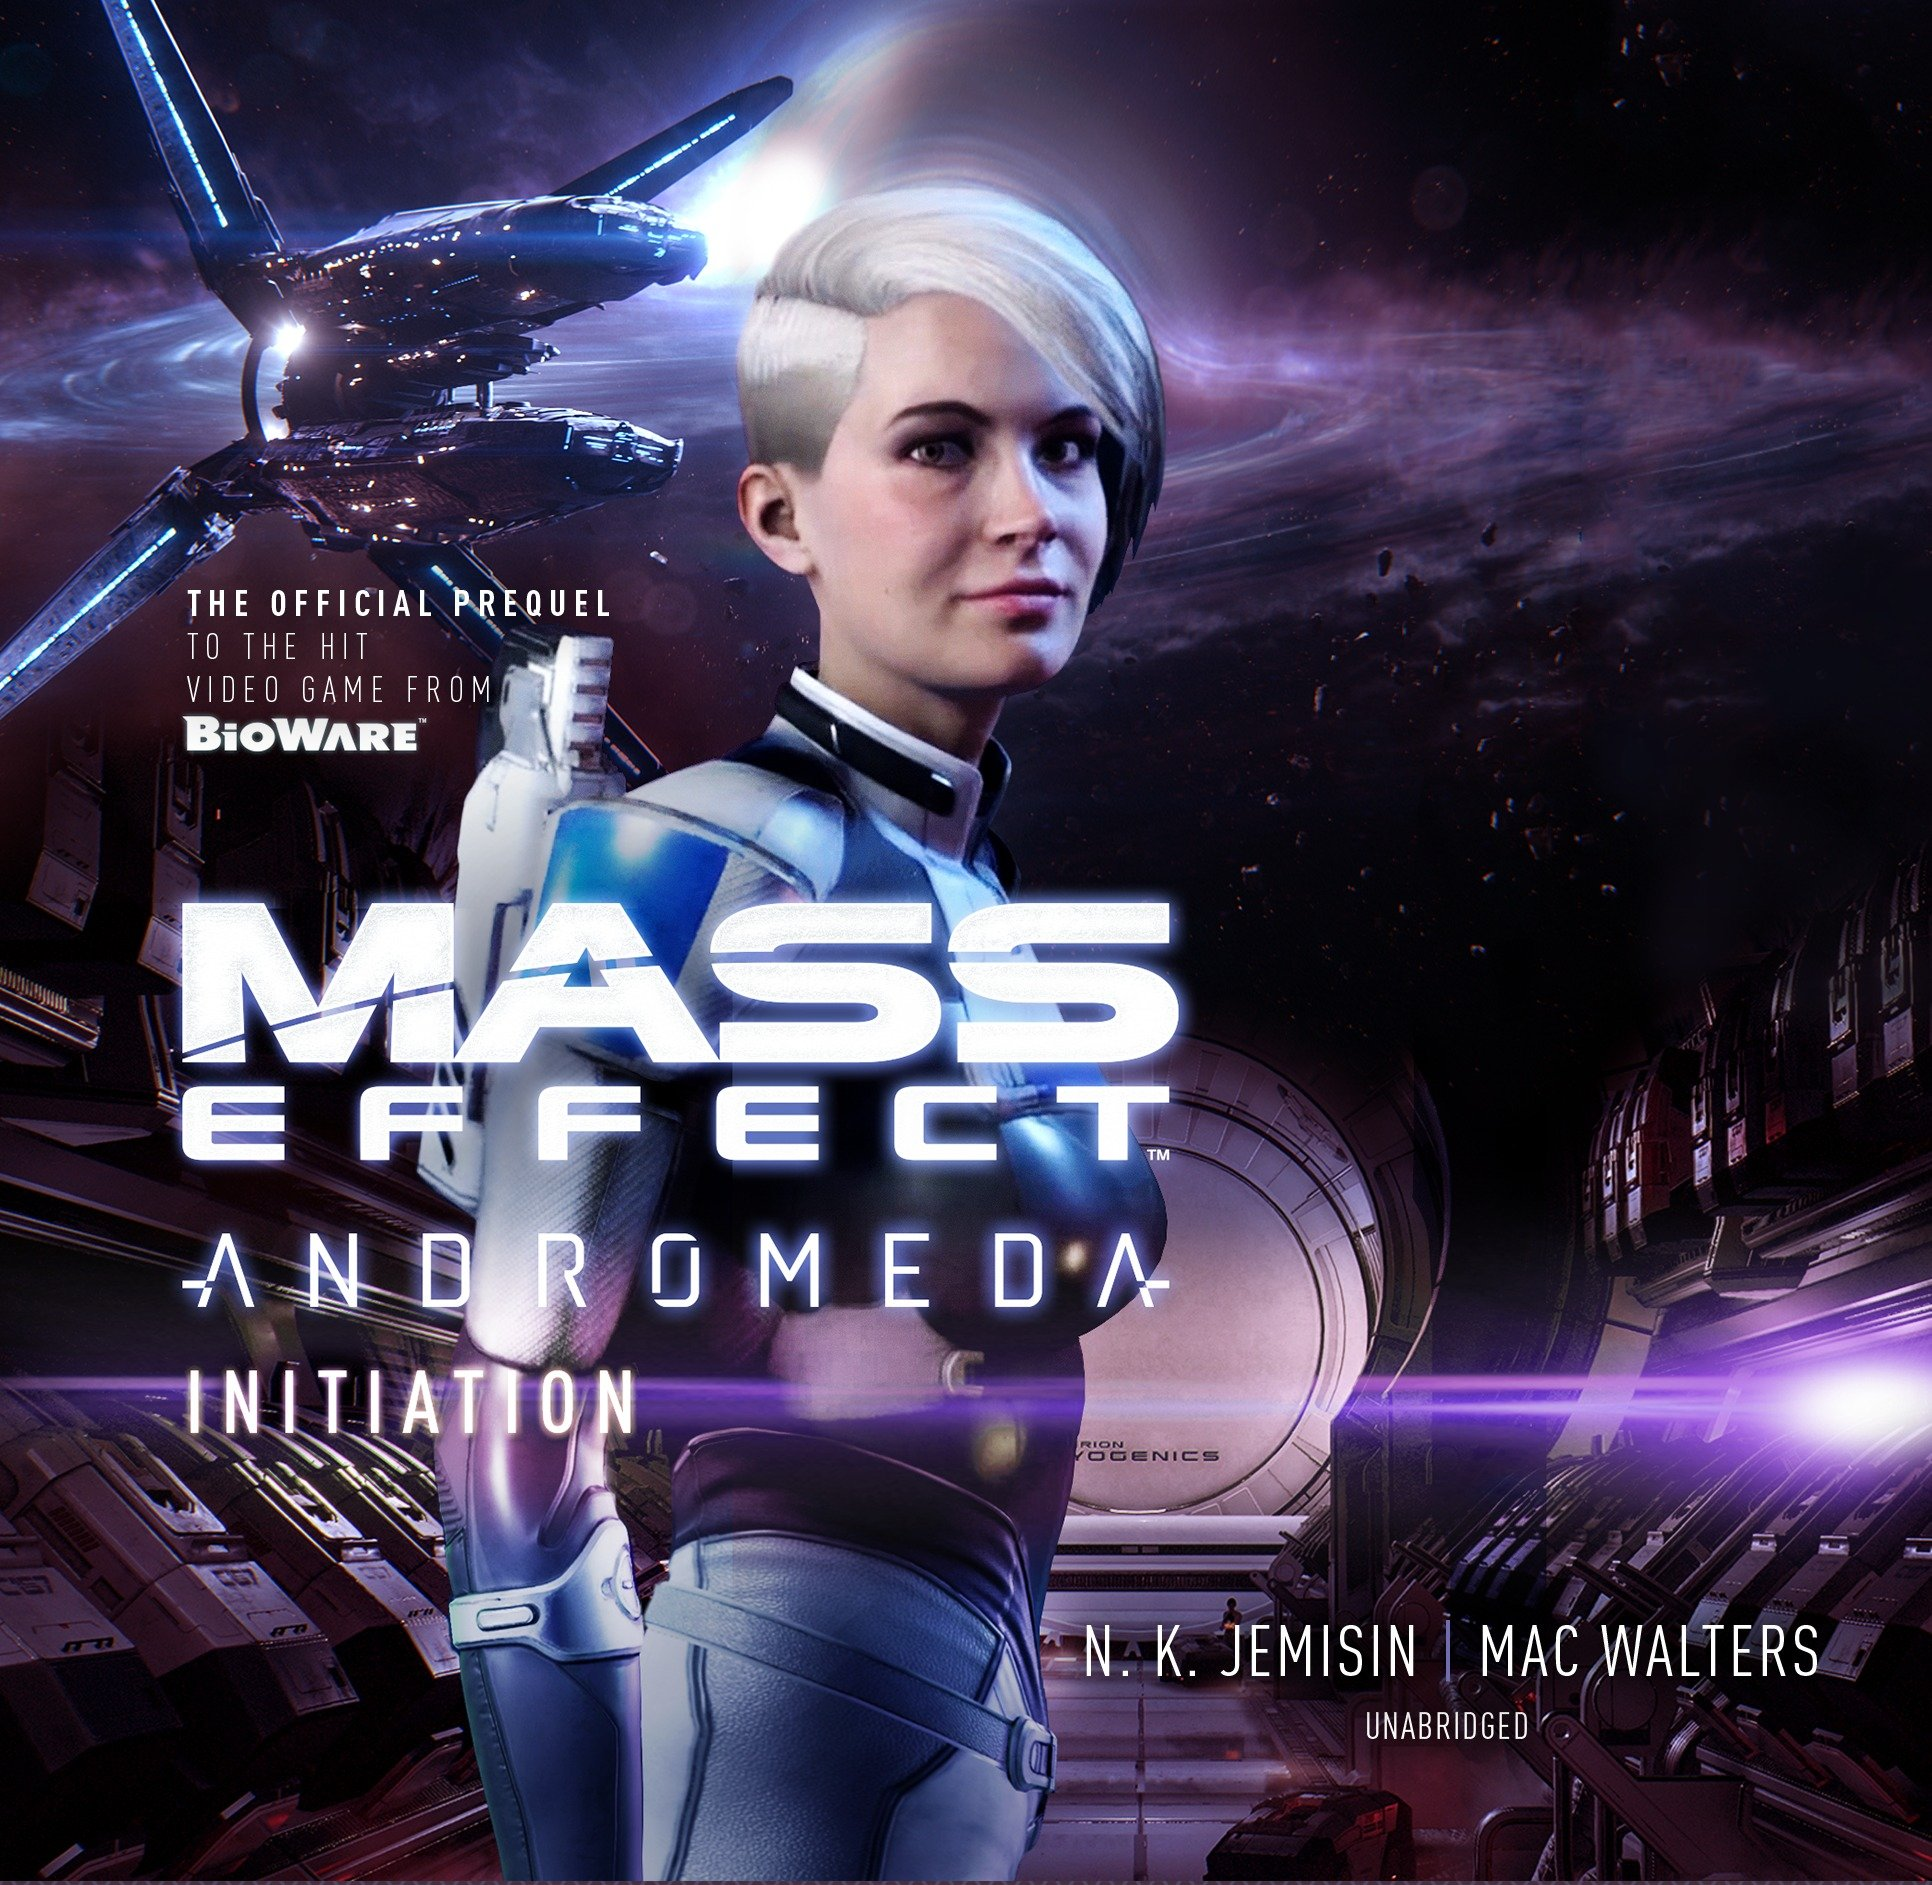 Mass Effect Andromeda Initiation Mass Effect Andromeda Series Book 3 N K Jemisin Mac Walters 9781470821562 Books Amazon Ca